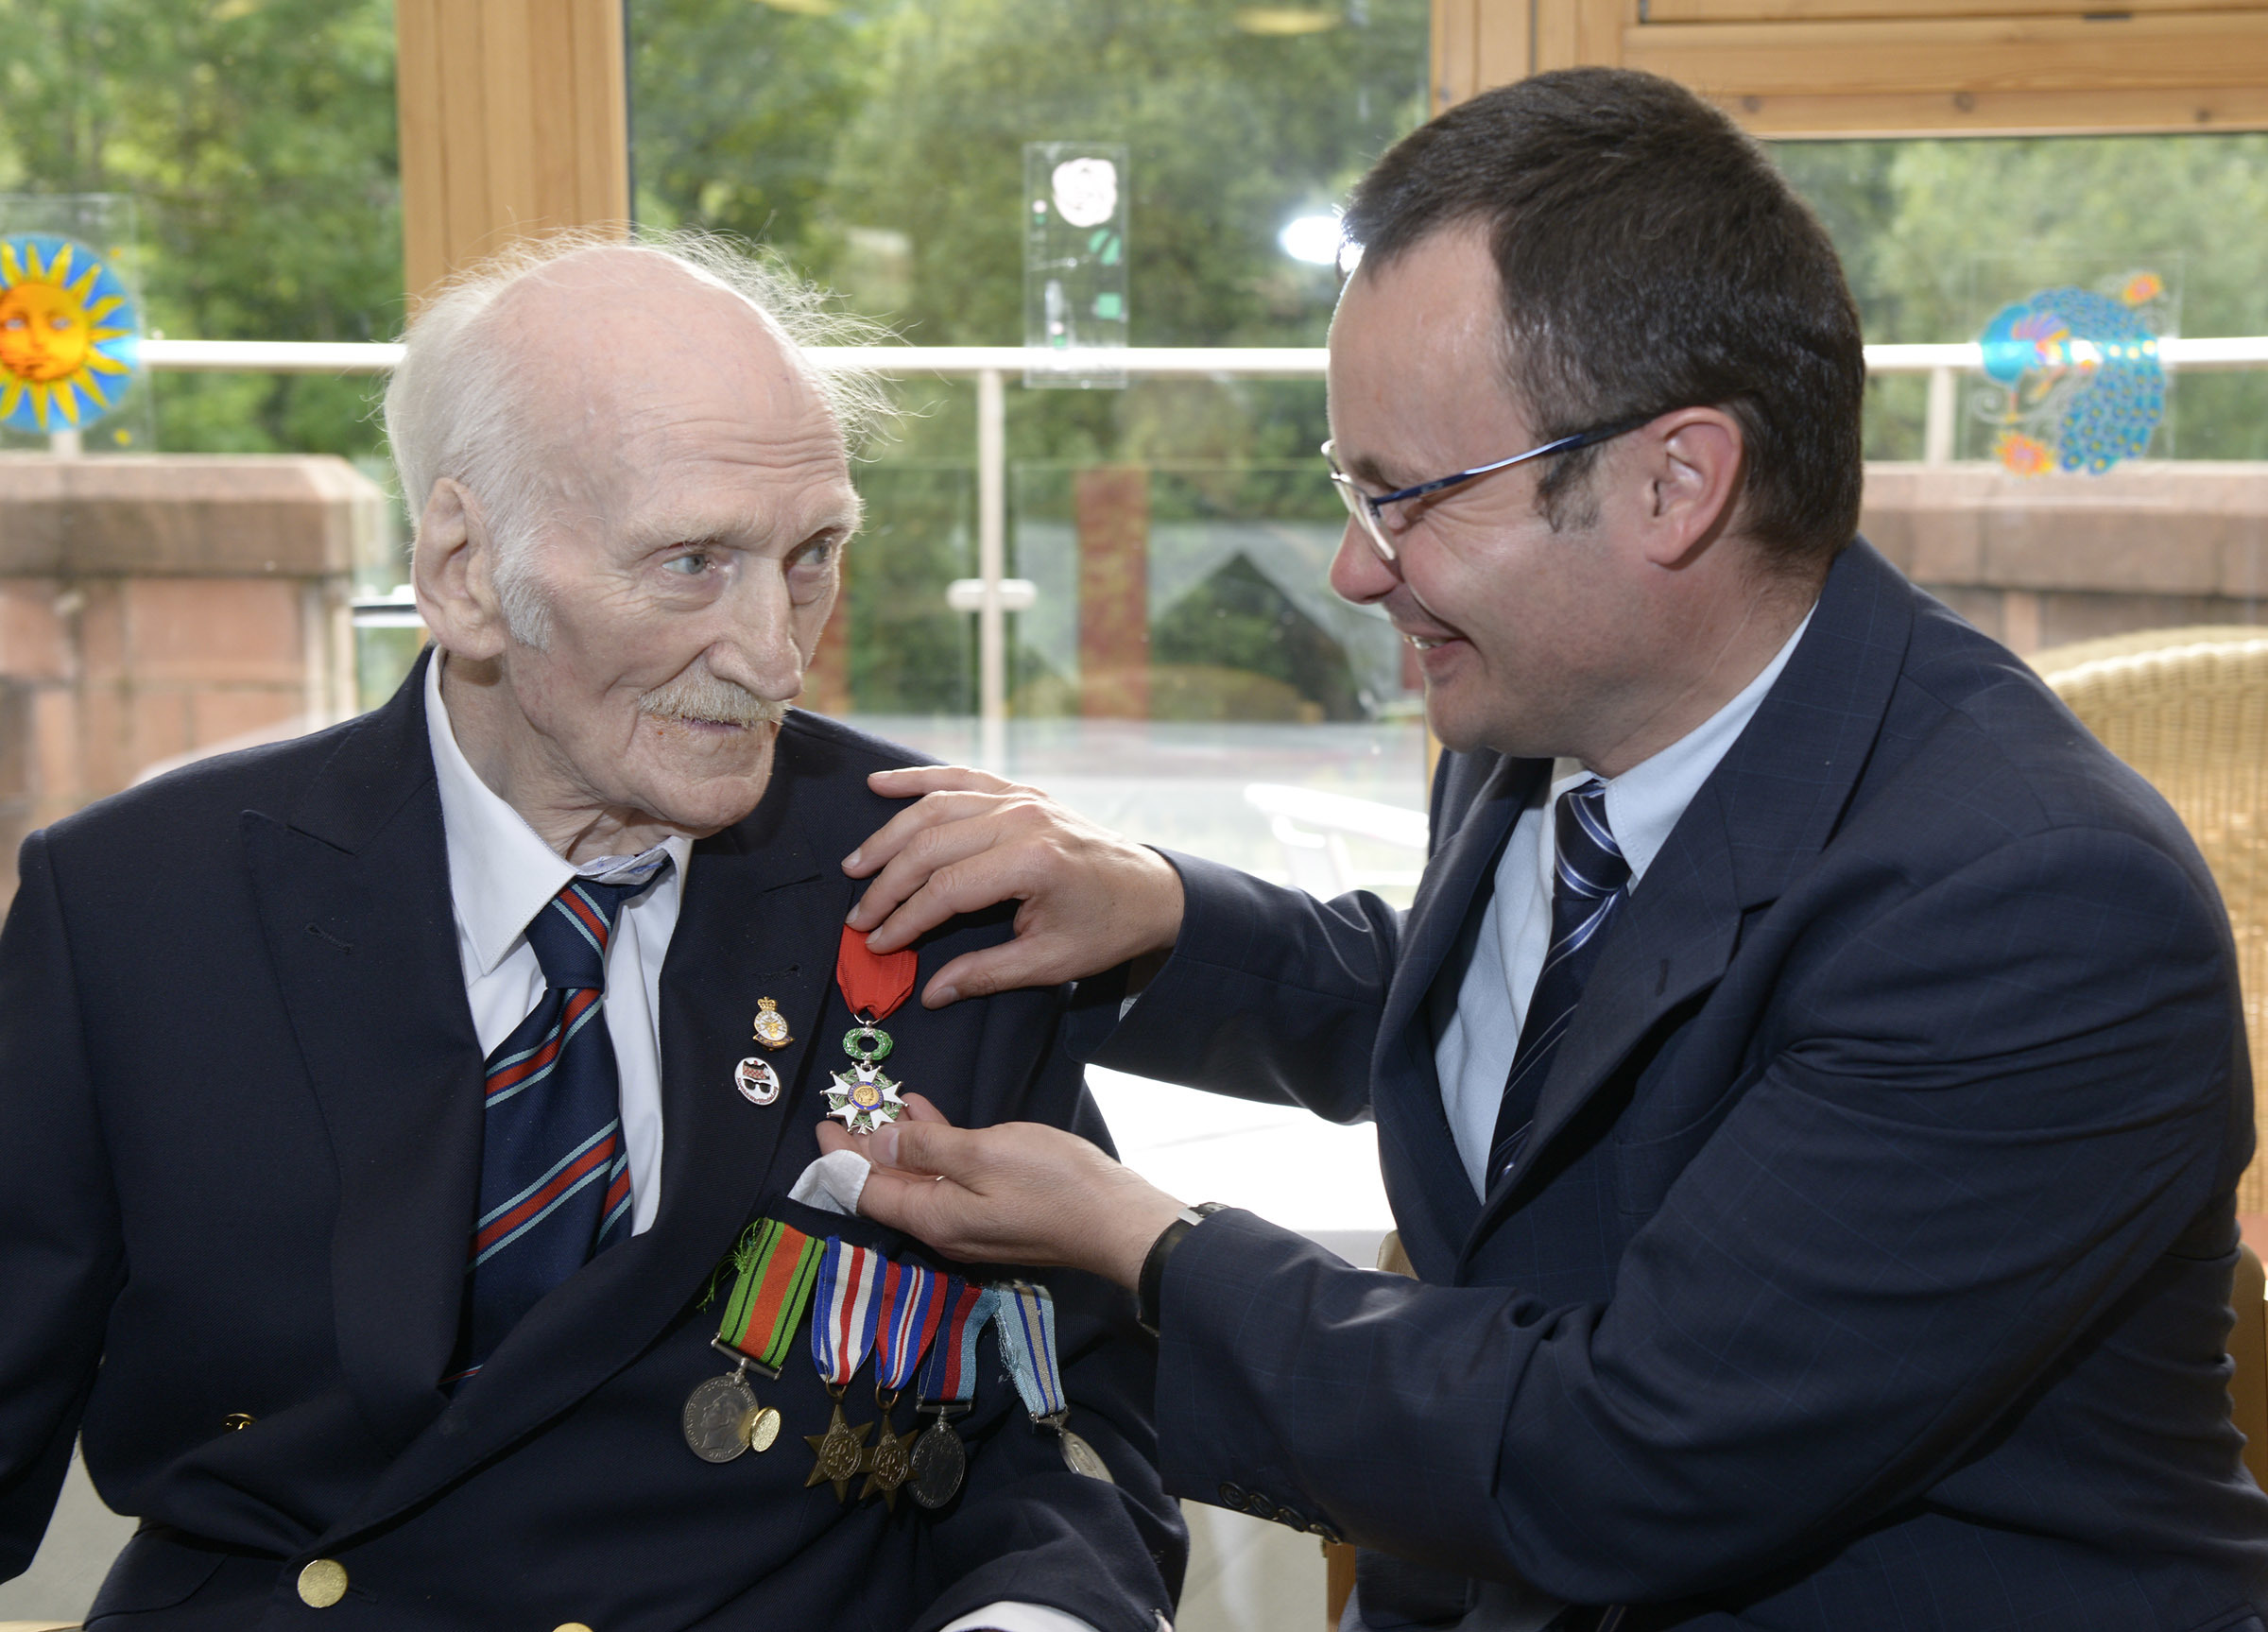 French Consul General Emmanuel Cocher presents the Légion d'honneur to Alex MacLachlan